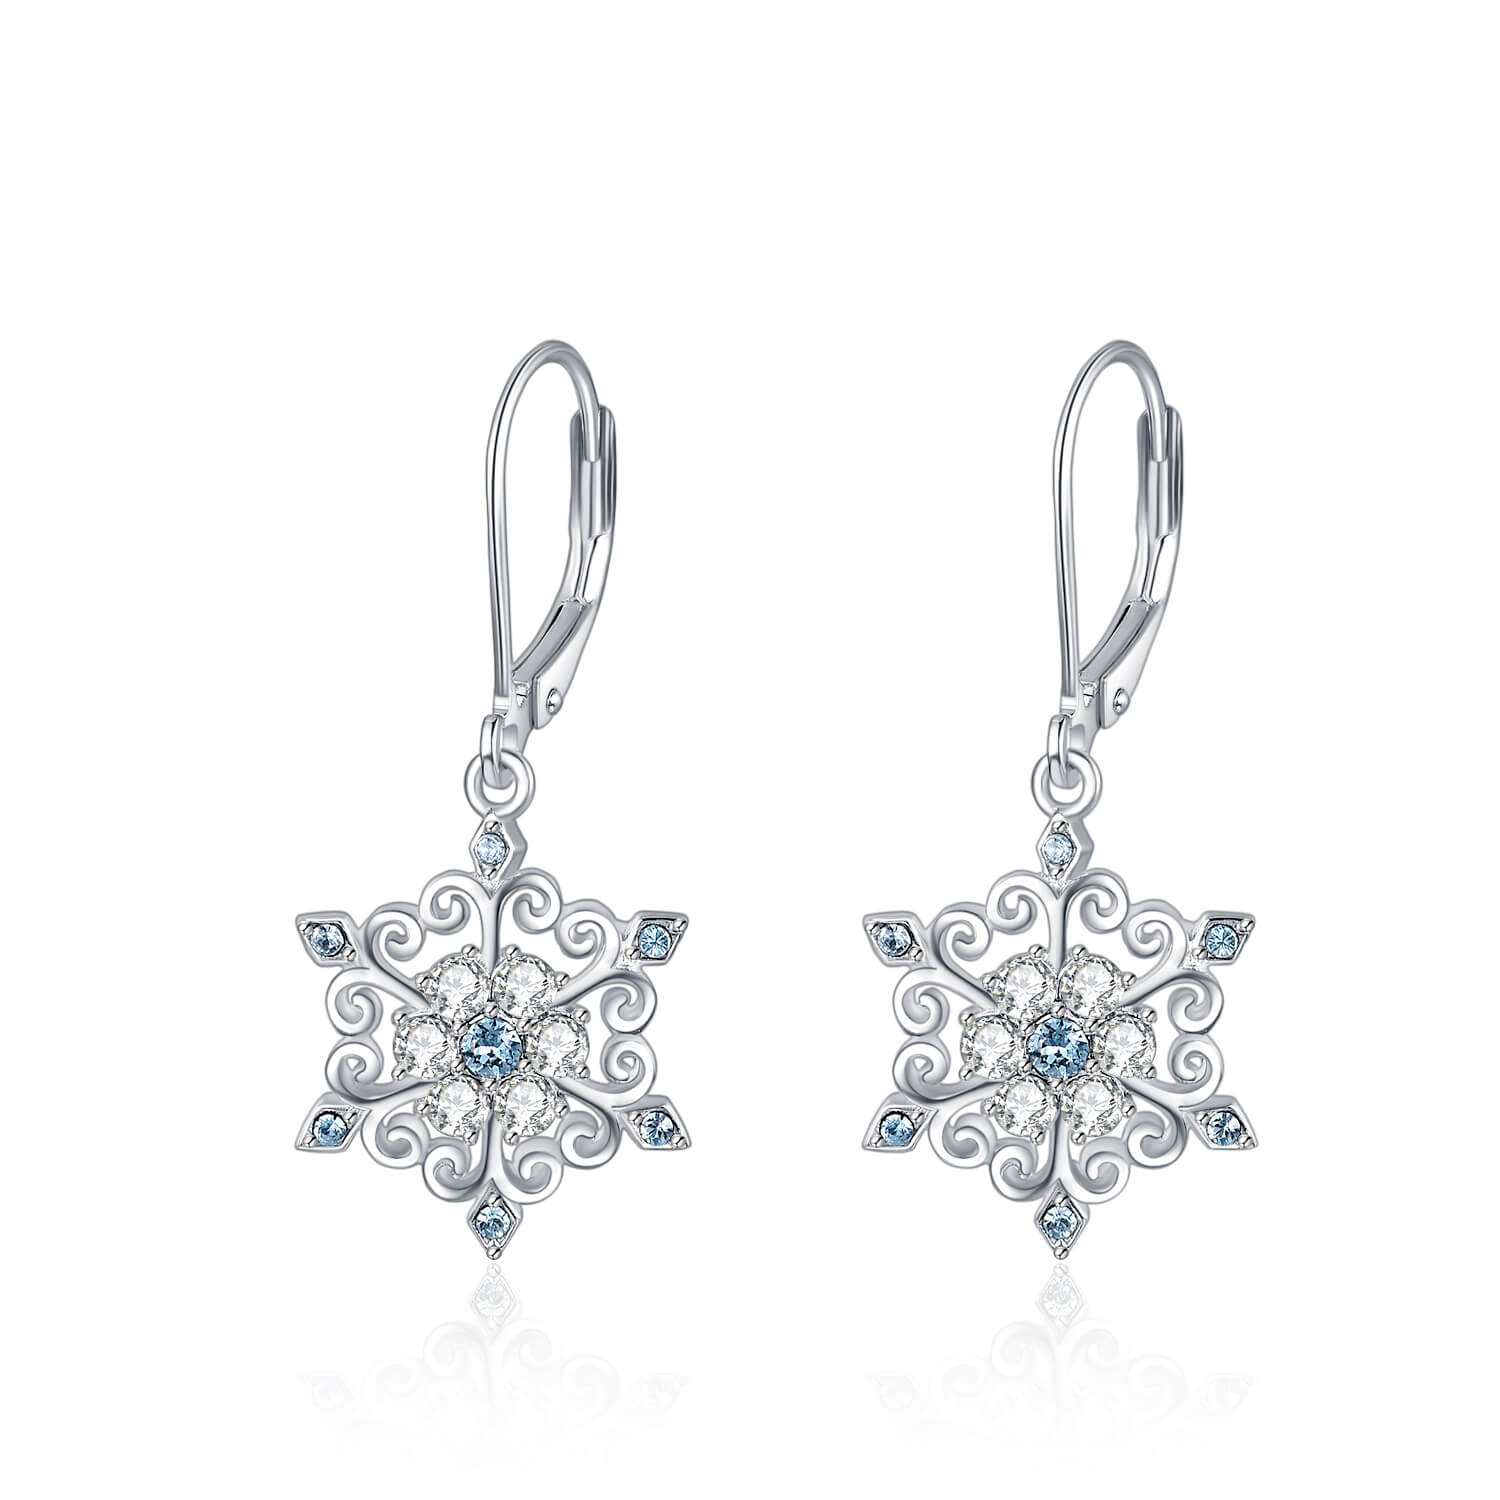 925 Sterling Silver Snowflake Leverback Earrings With Swarovski Crystal